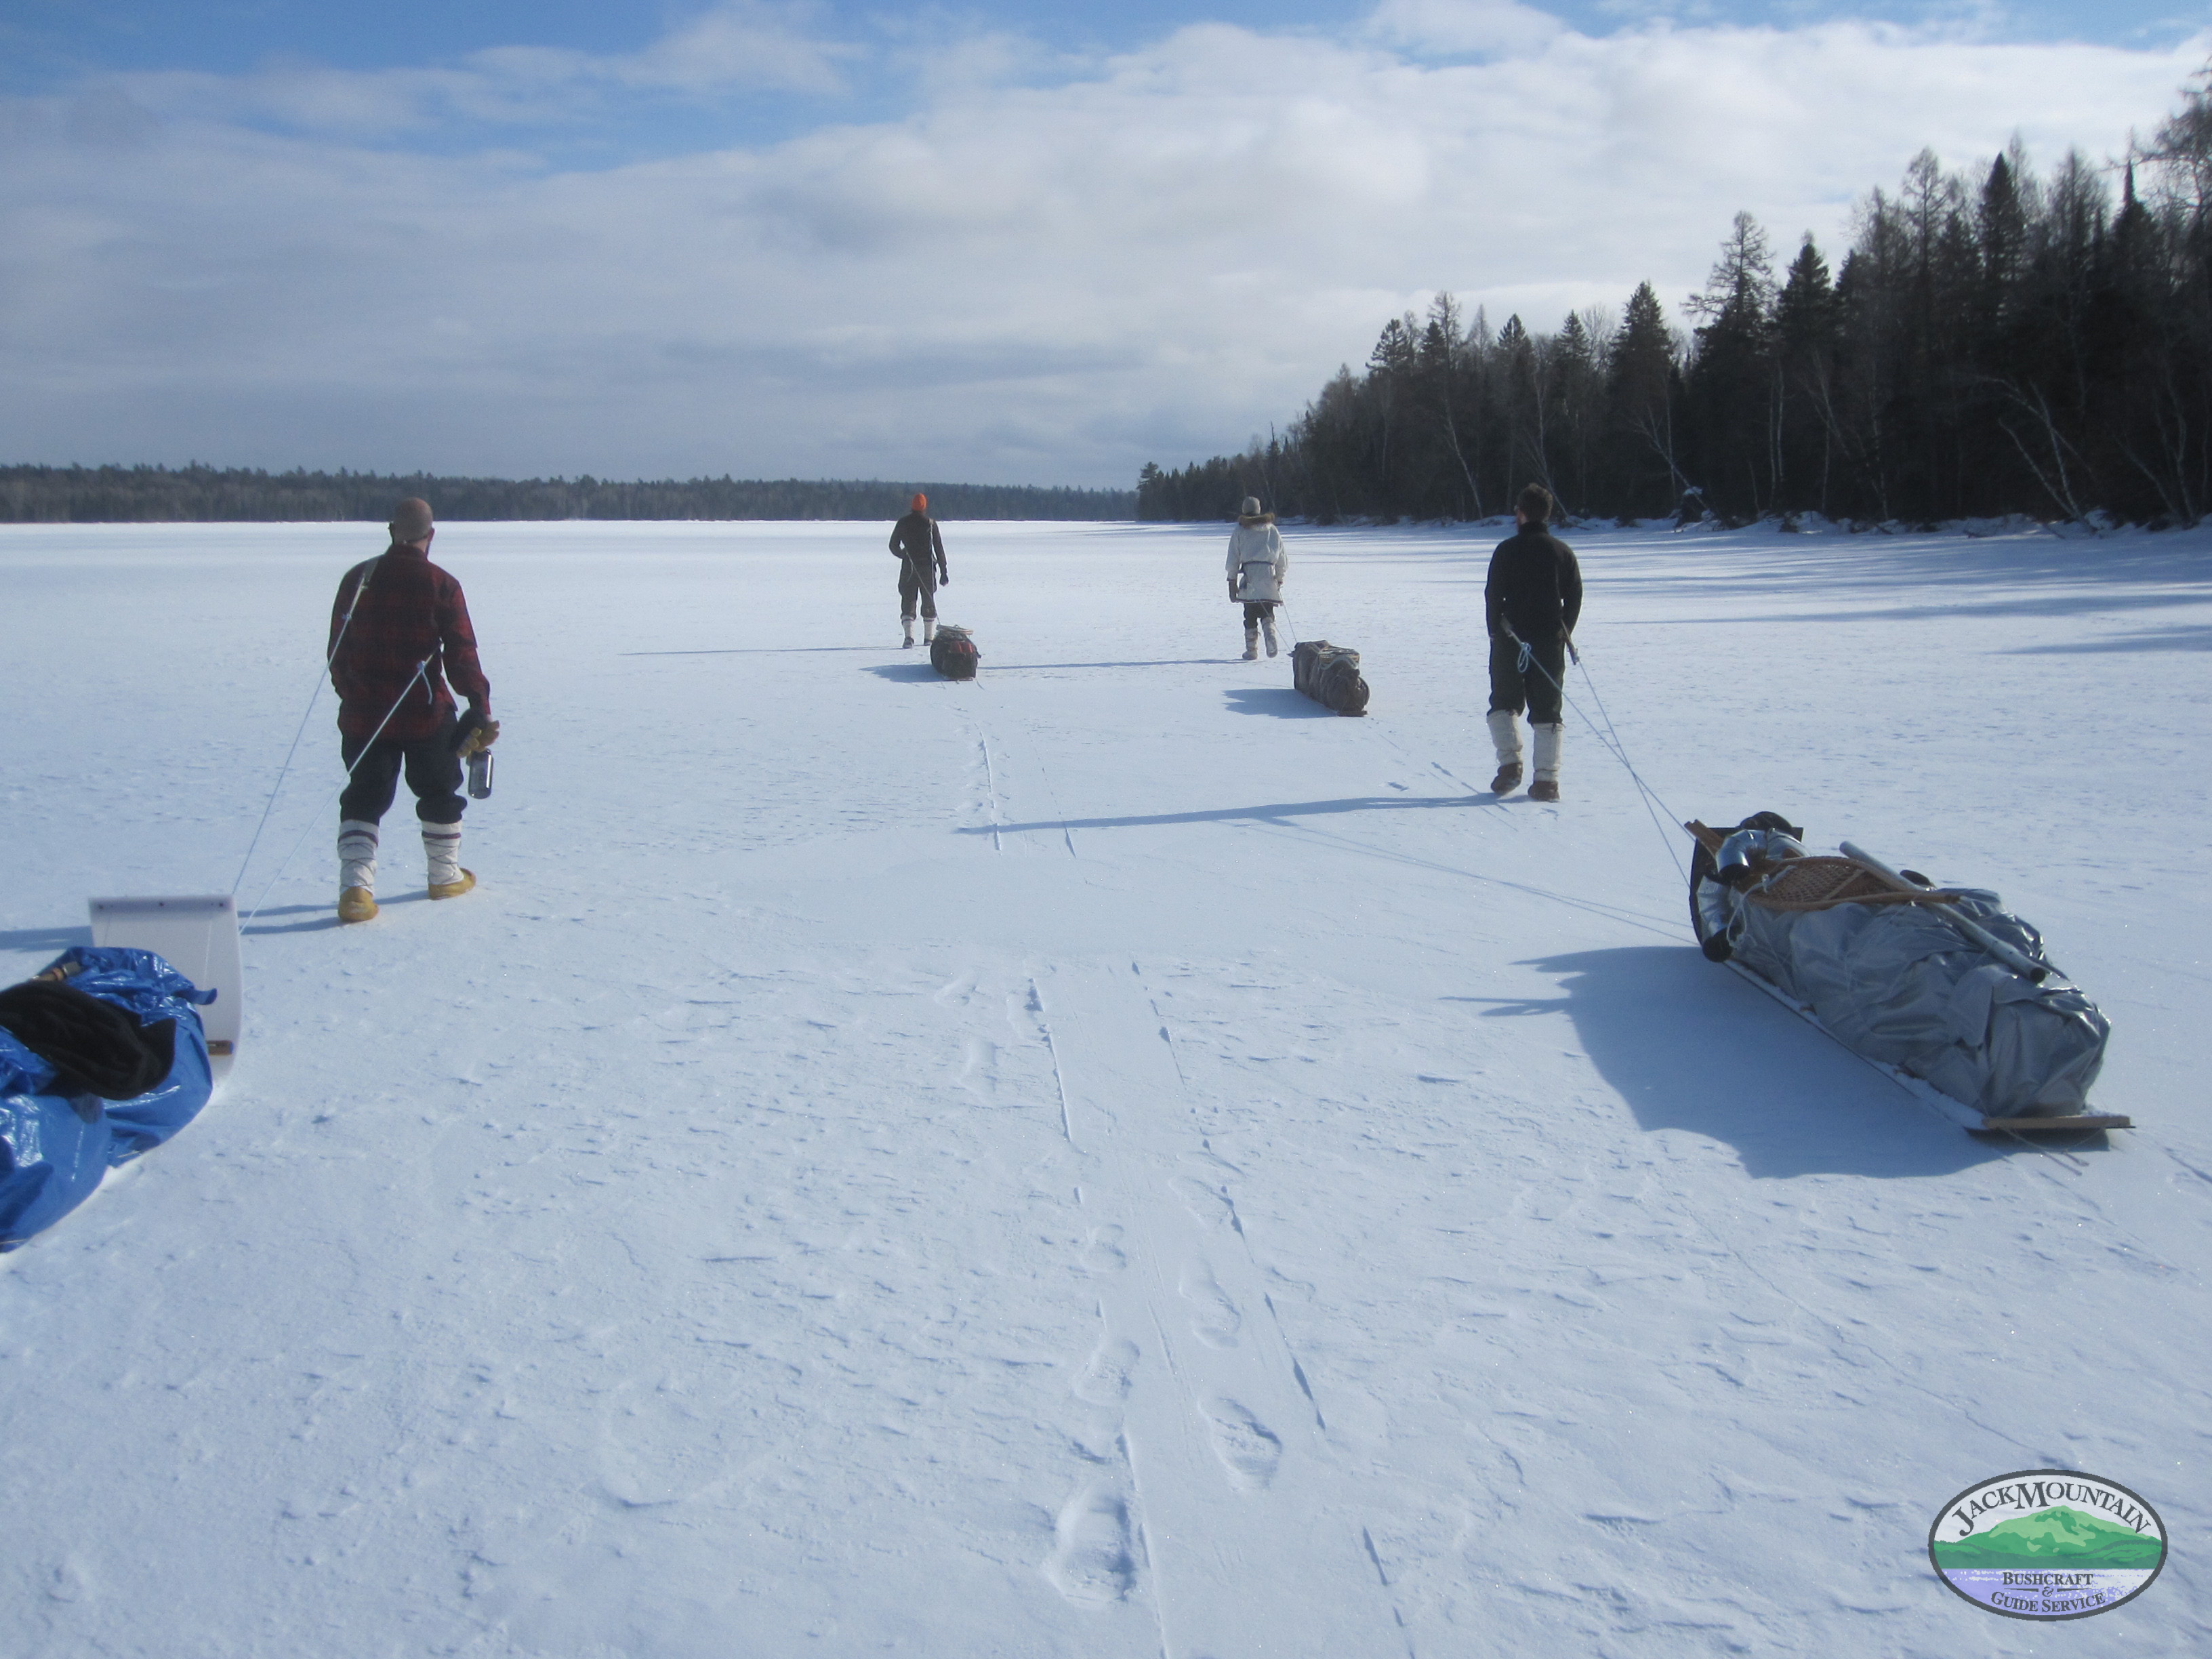 Podcast About The Boreal Snowshoe Expedition By 2 Participants